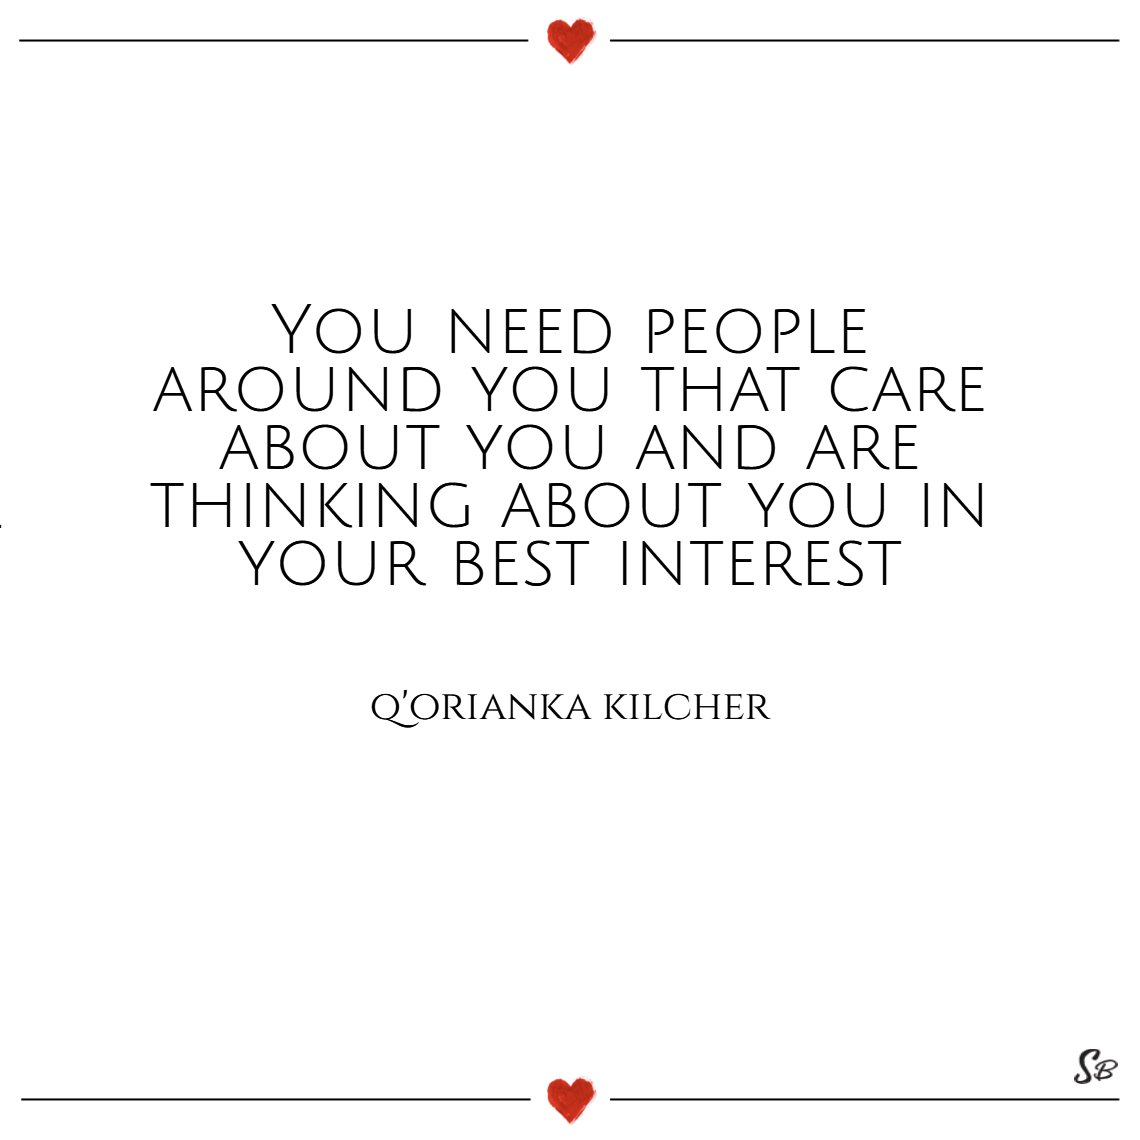 You need people around you that care about you and are thinking about you in your best interest. – q'orianka kilcher